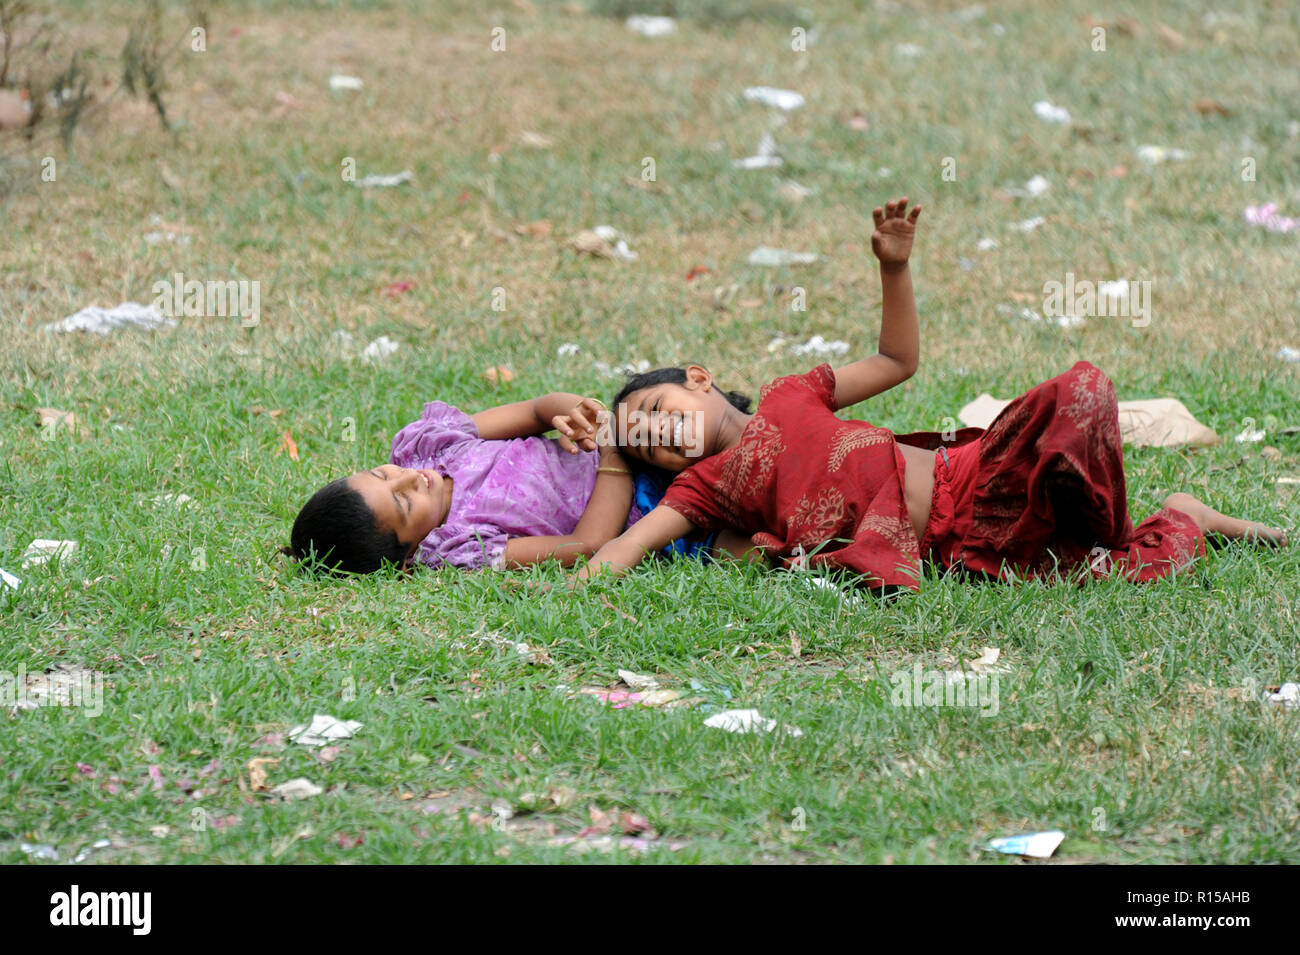 Dhaka, Bangladesh - April 19, 2010: Children playing in Village of the field at Dhaka, Bangladesh. - Stock Image